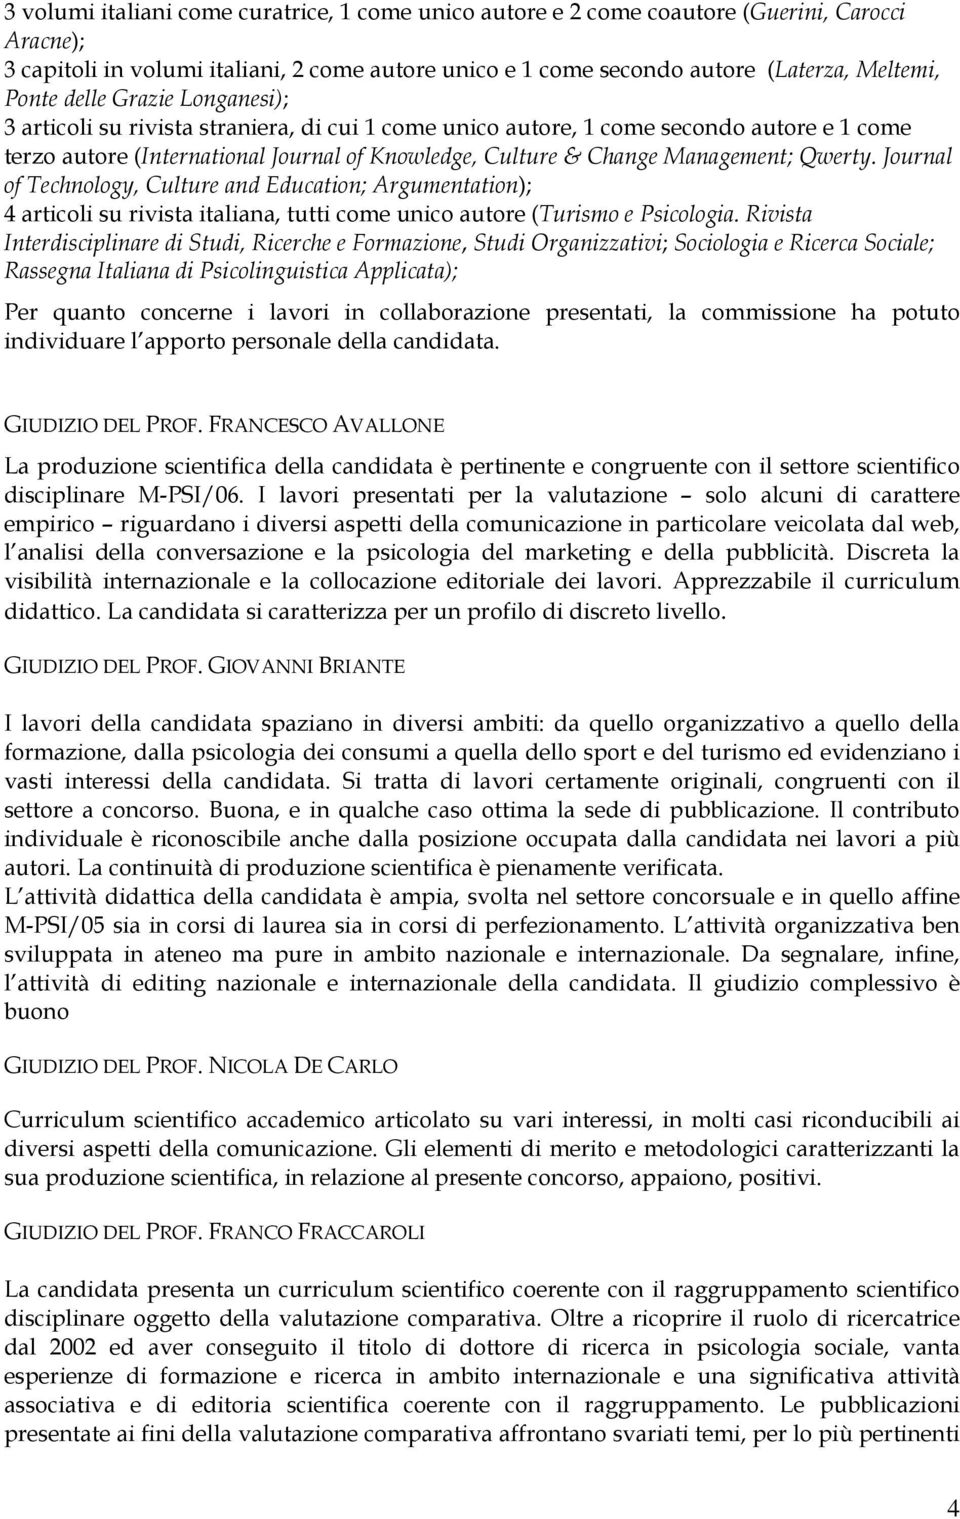 Qwerty. Journal of Technology, Culture and Education; Argumentation); 4 articoli su rivista italiana, tutti come unico autore (Turismo e Psicologia.